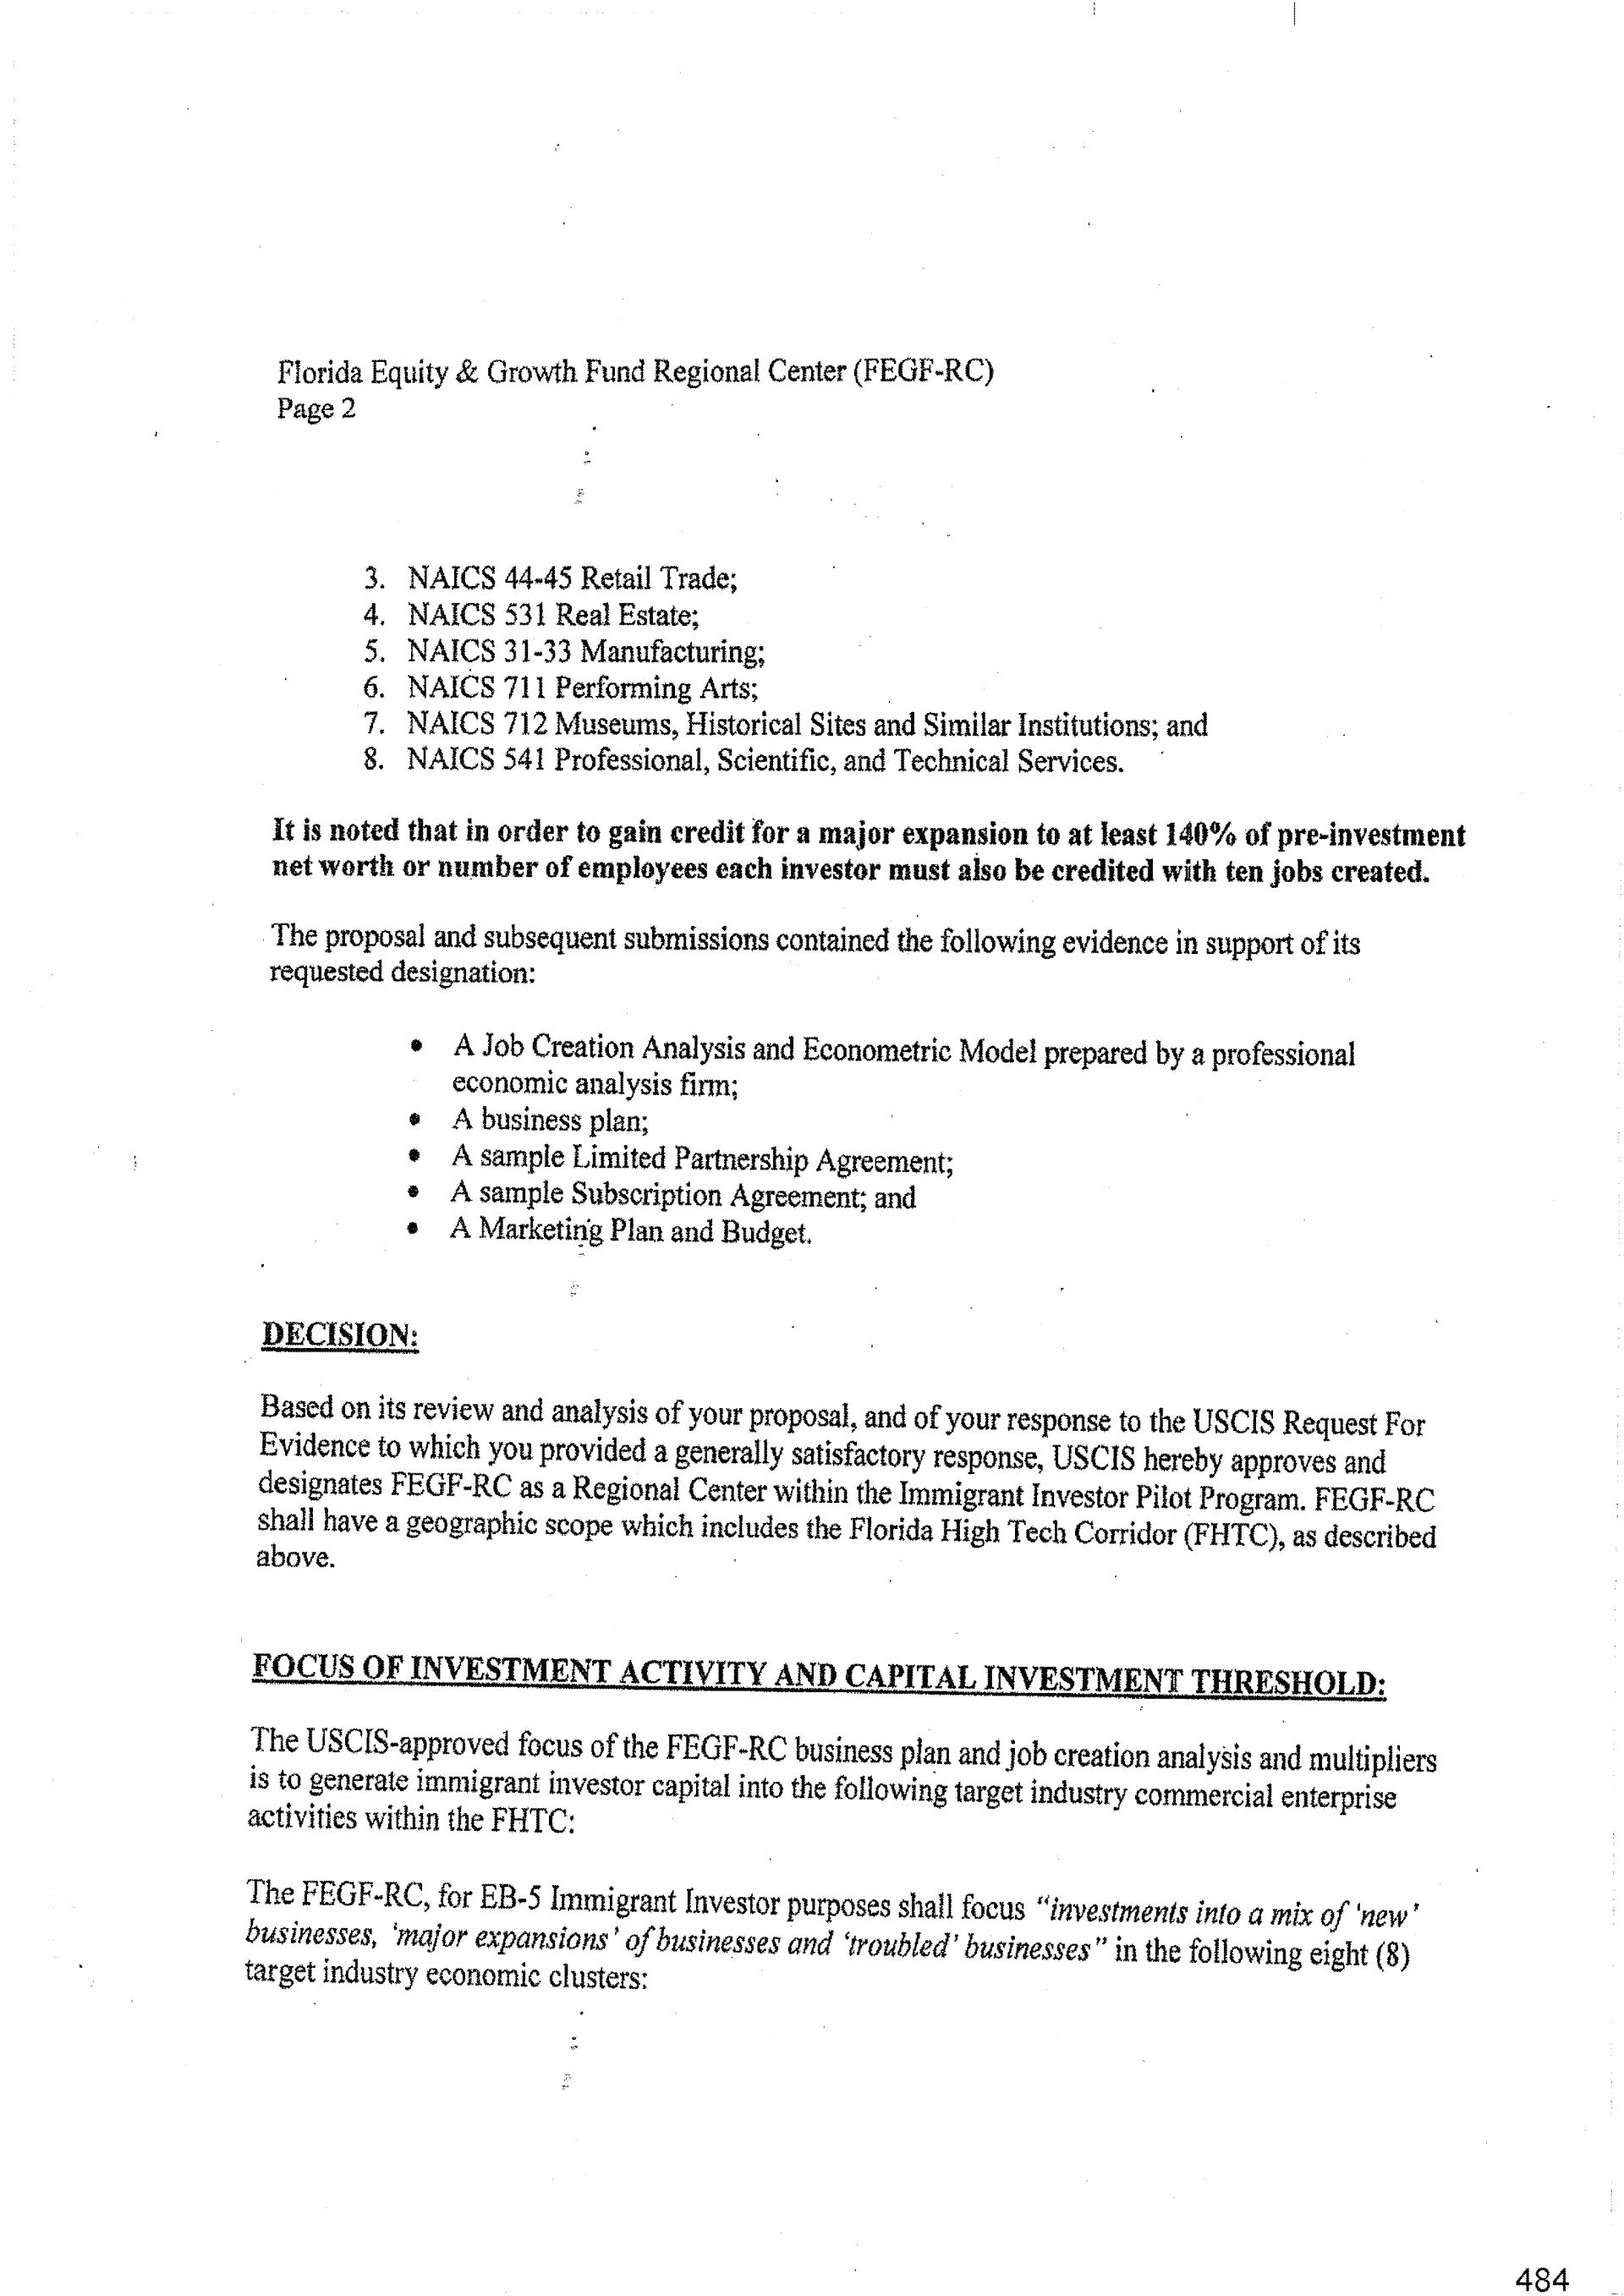 Letter Of Intent Investment Template - Free Letter Intent torchase Real Estate Template Mercial